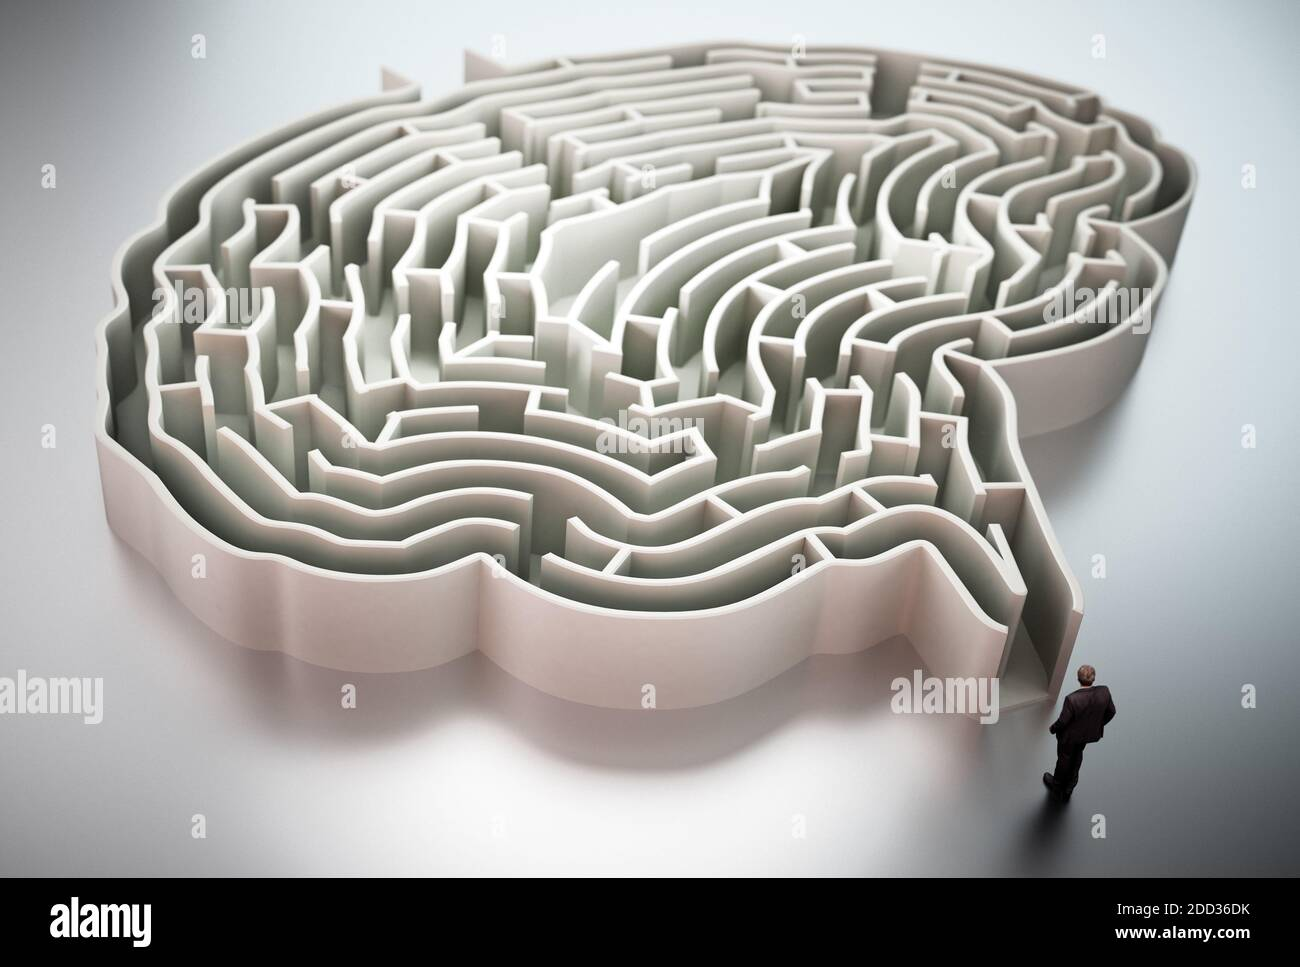 Businessman standing at the entrance of brain shaped maze 3D illustration. Stock Photo